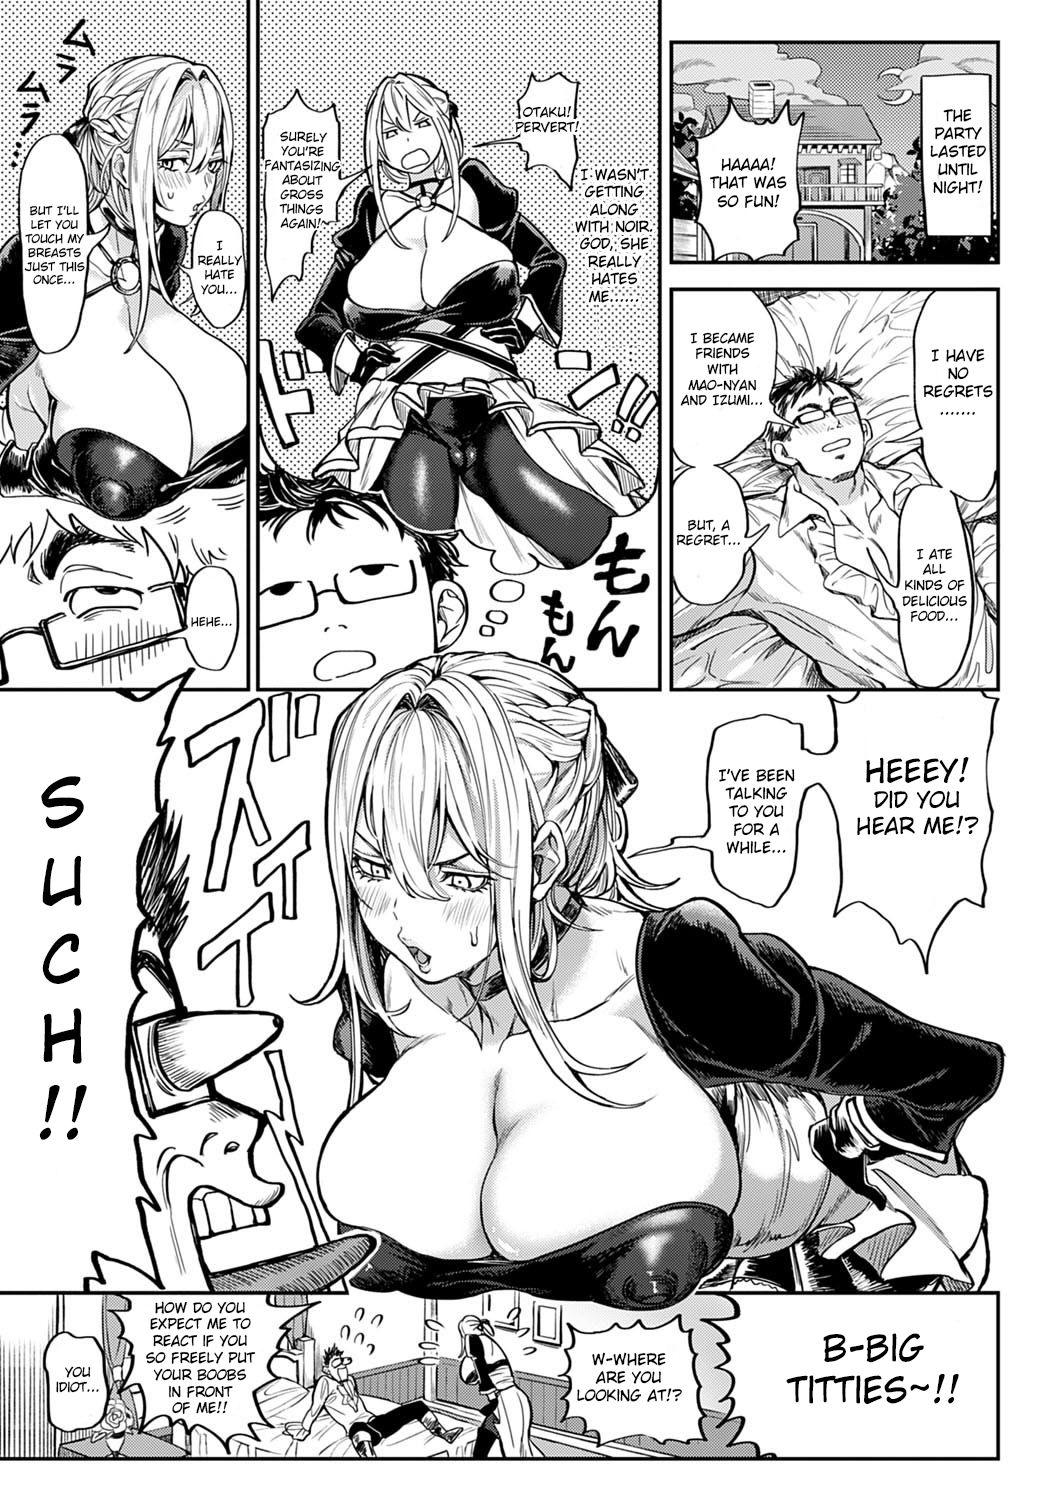 [Announ] Ore Saikyou Quest ~Isekai Harem no Sho~ | My story with my Harem in another world [English] [Digital] 46